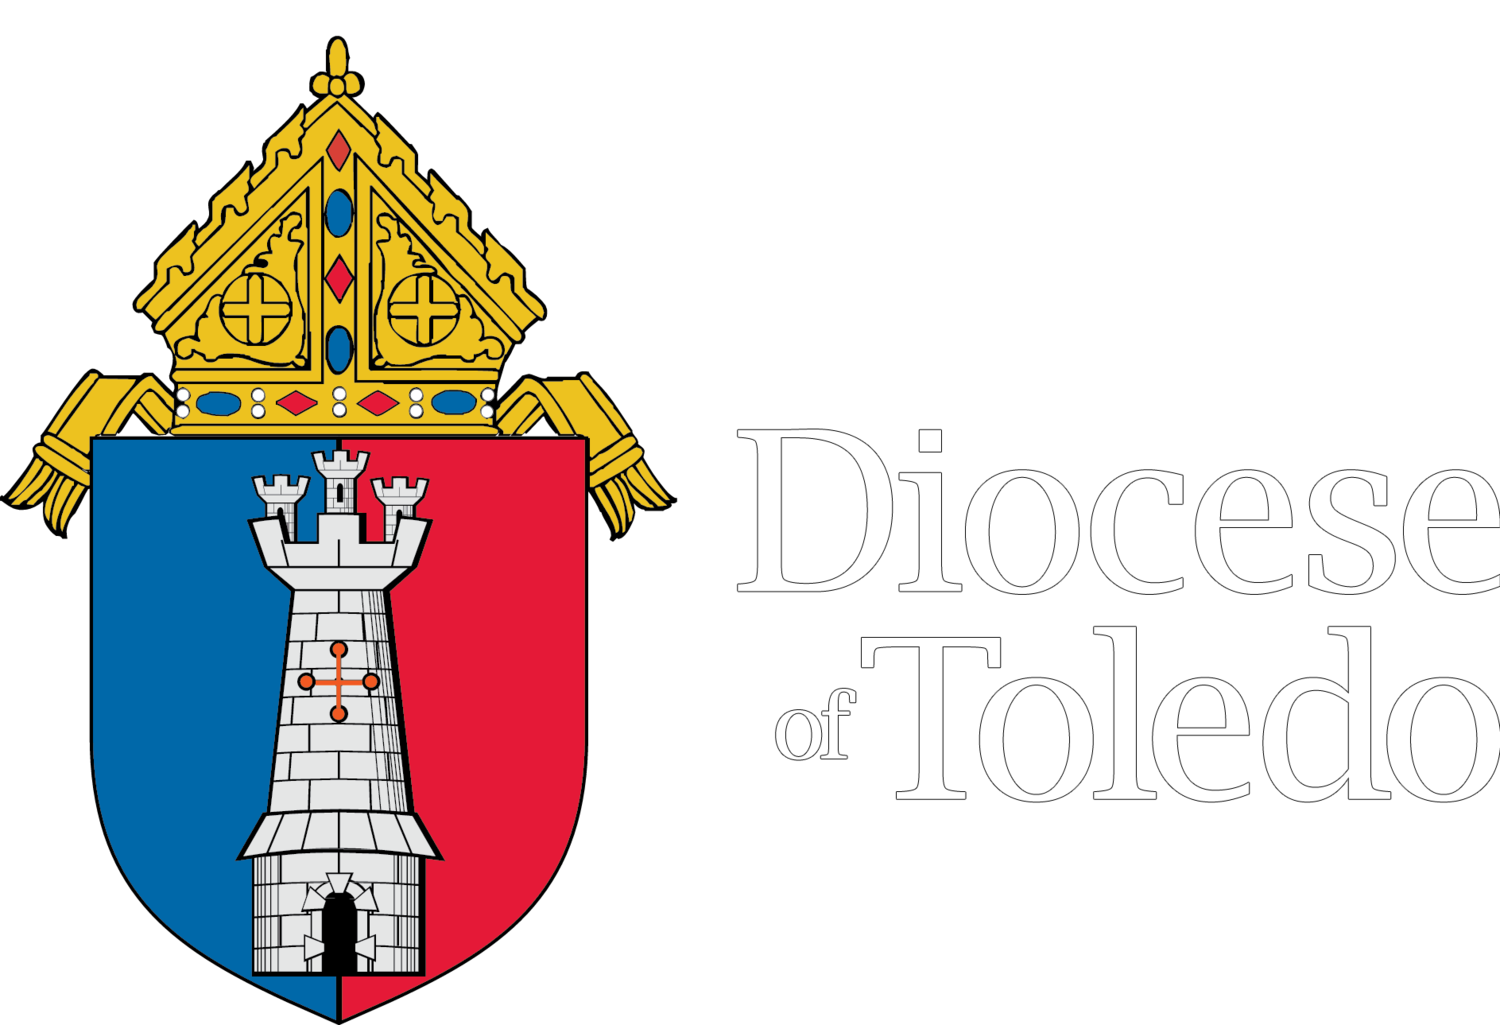 Diocese of Toledo